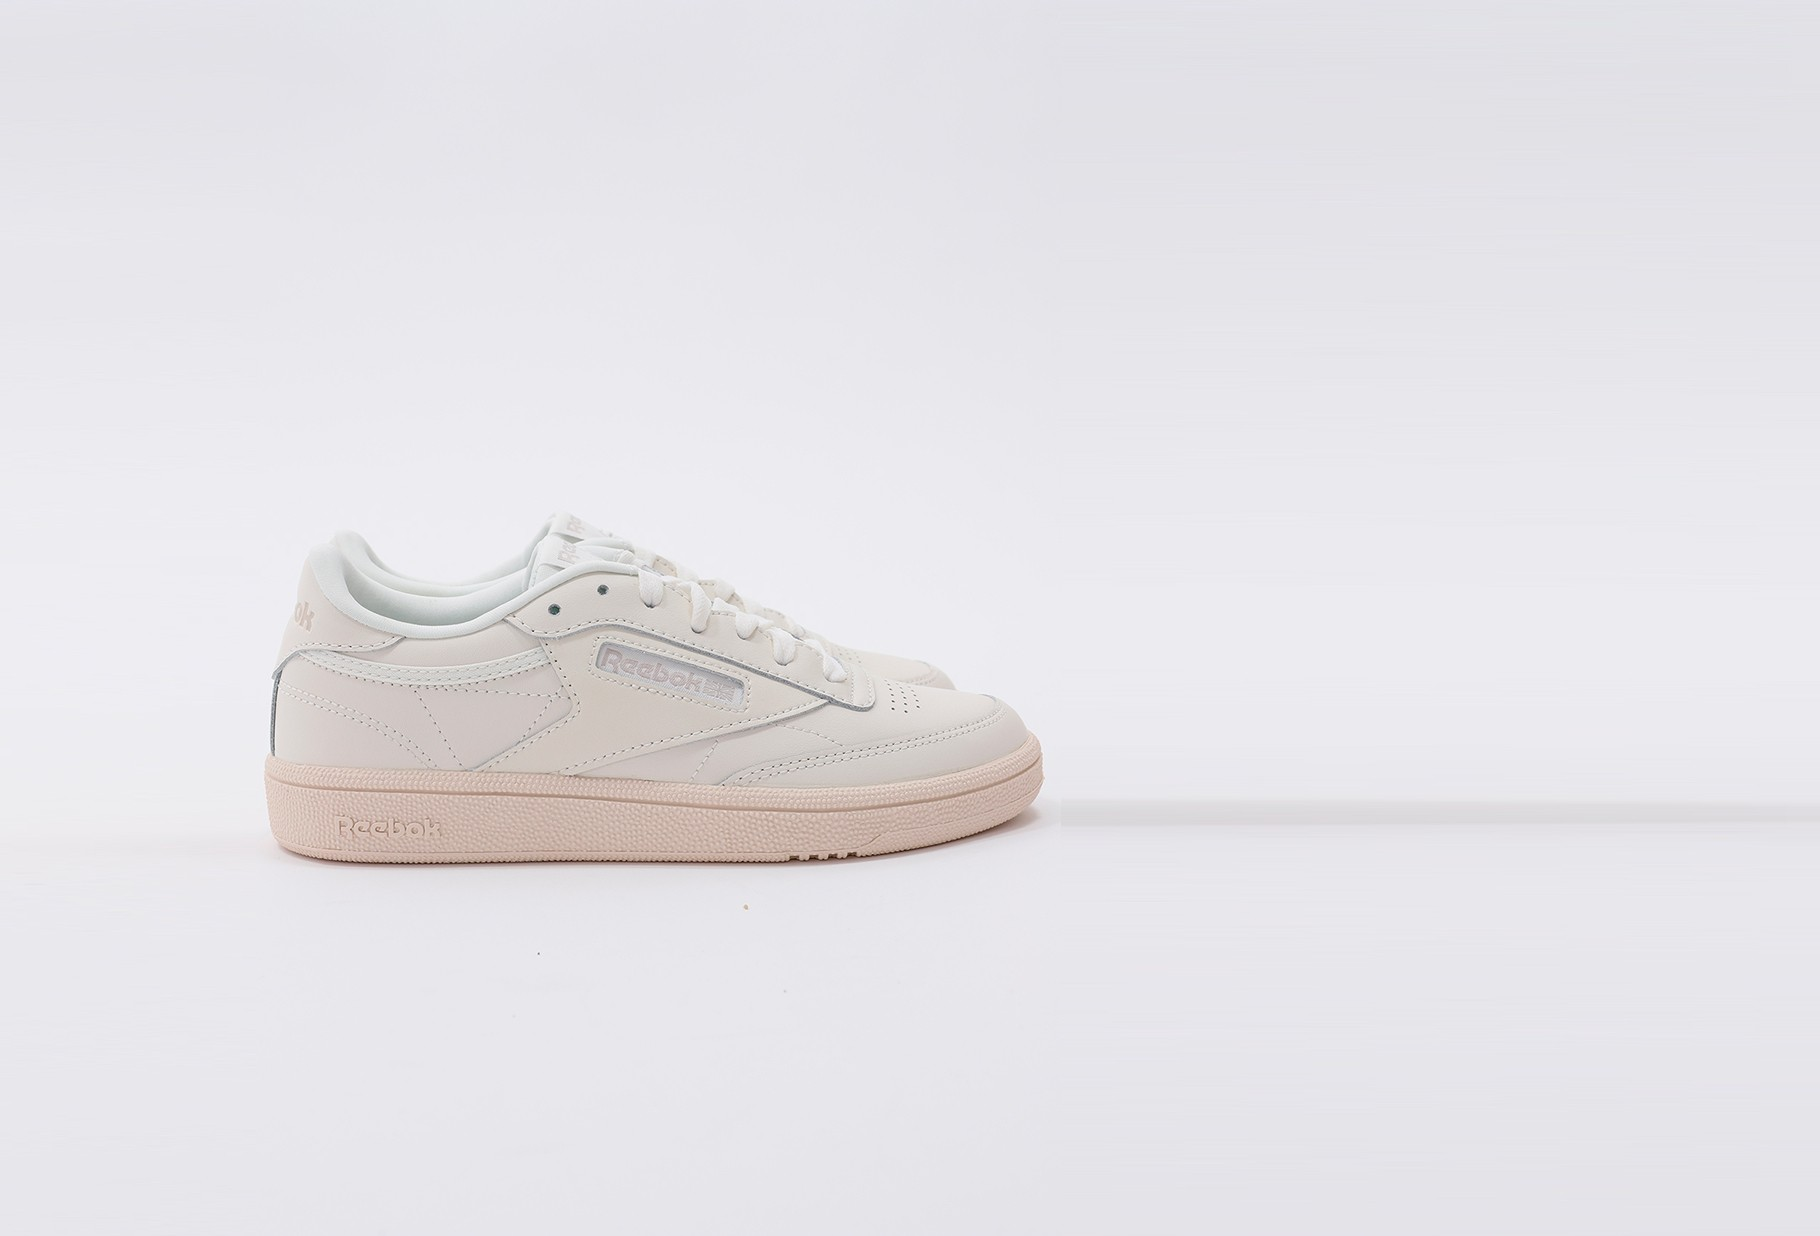 REEBOK FOR WOMAN / Club c 85 Chalk